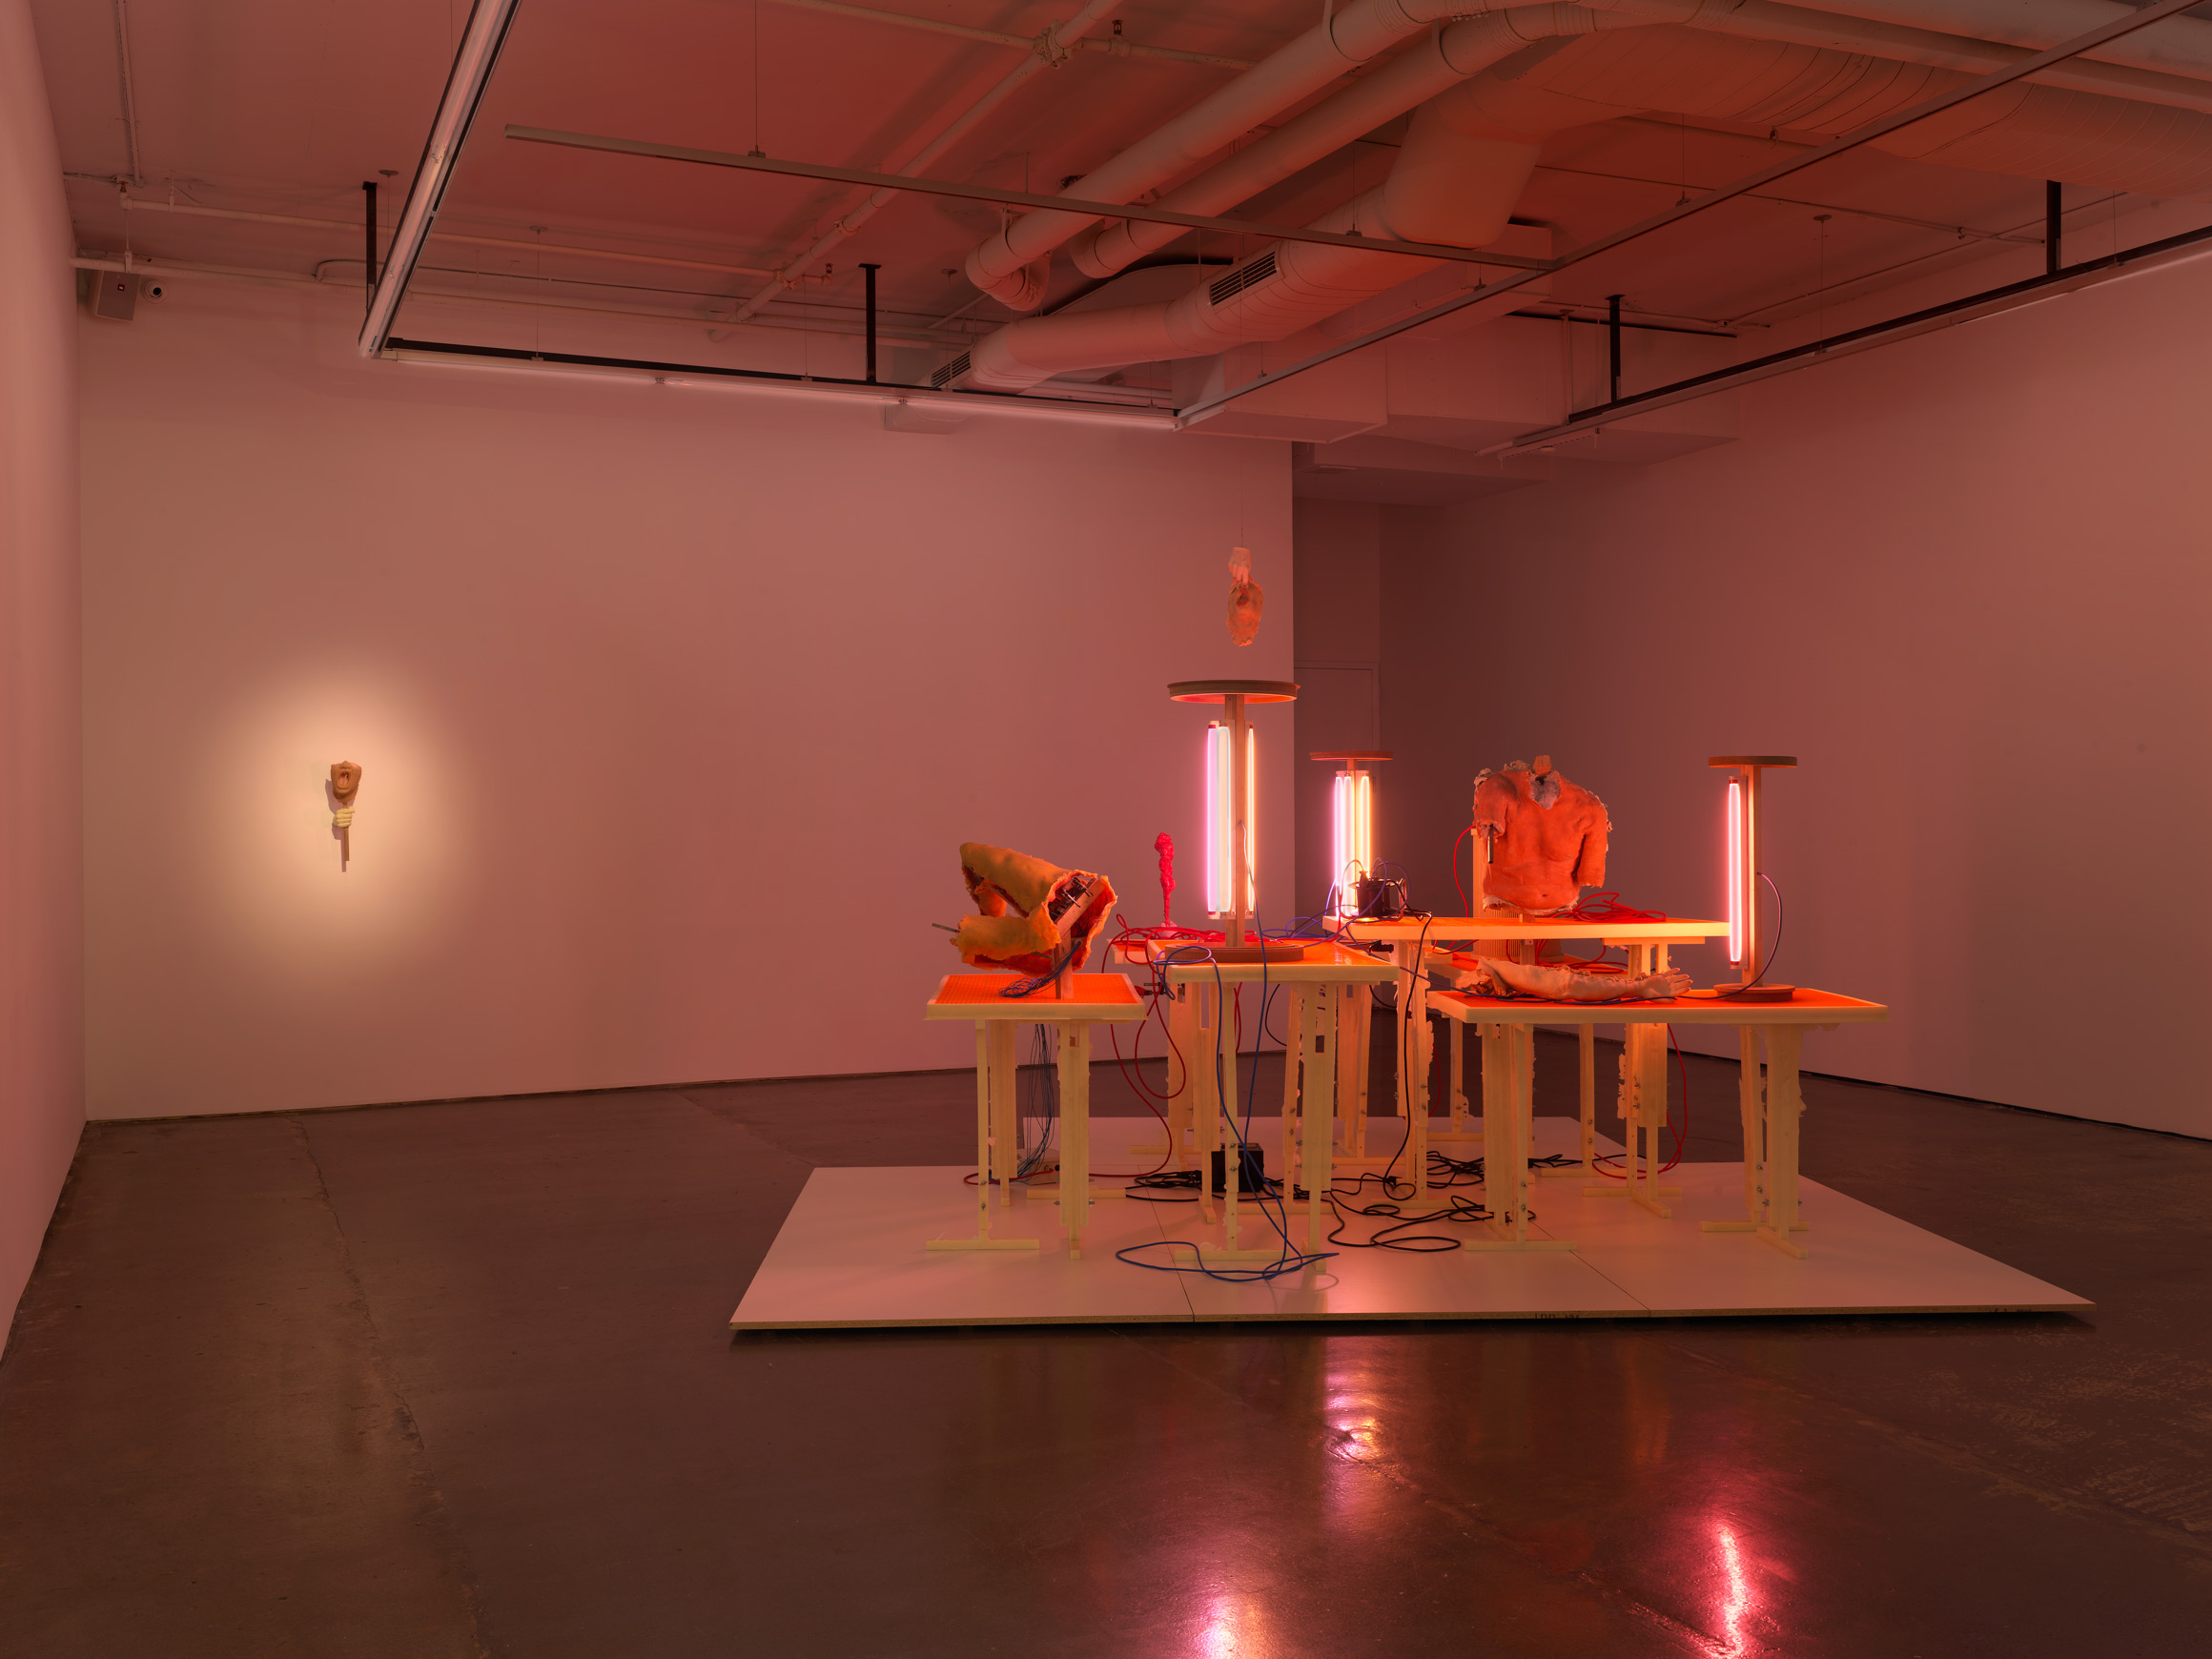 Malte Bruns, Grim Tales, Cassina Projects, NYC